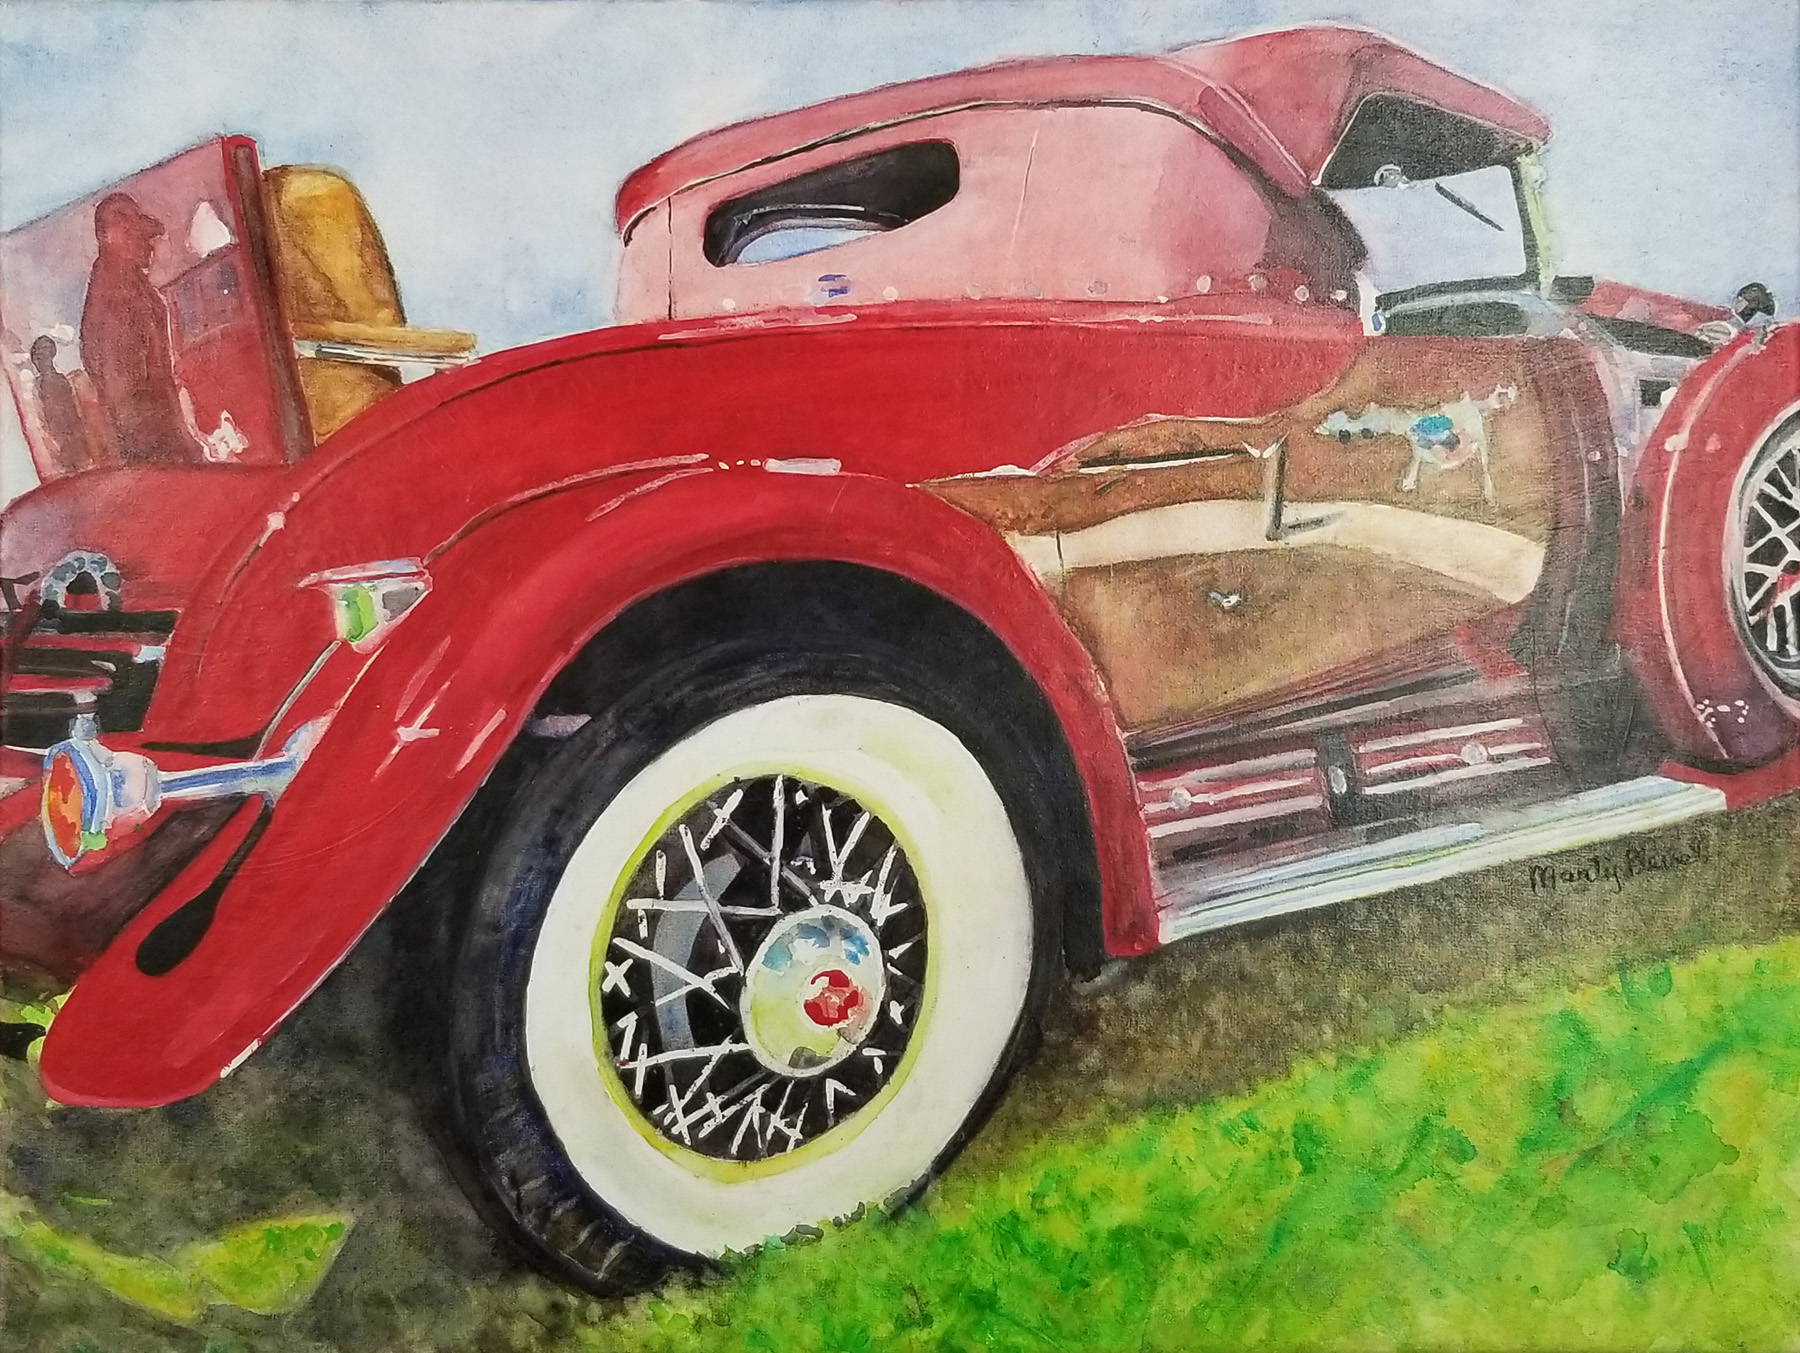 Waxed Cadillac by  Marty Plevel - Masterpiece Online